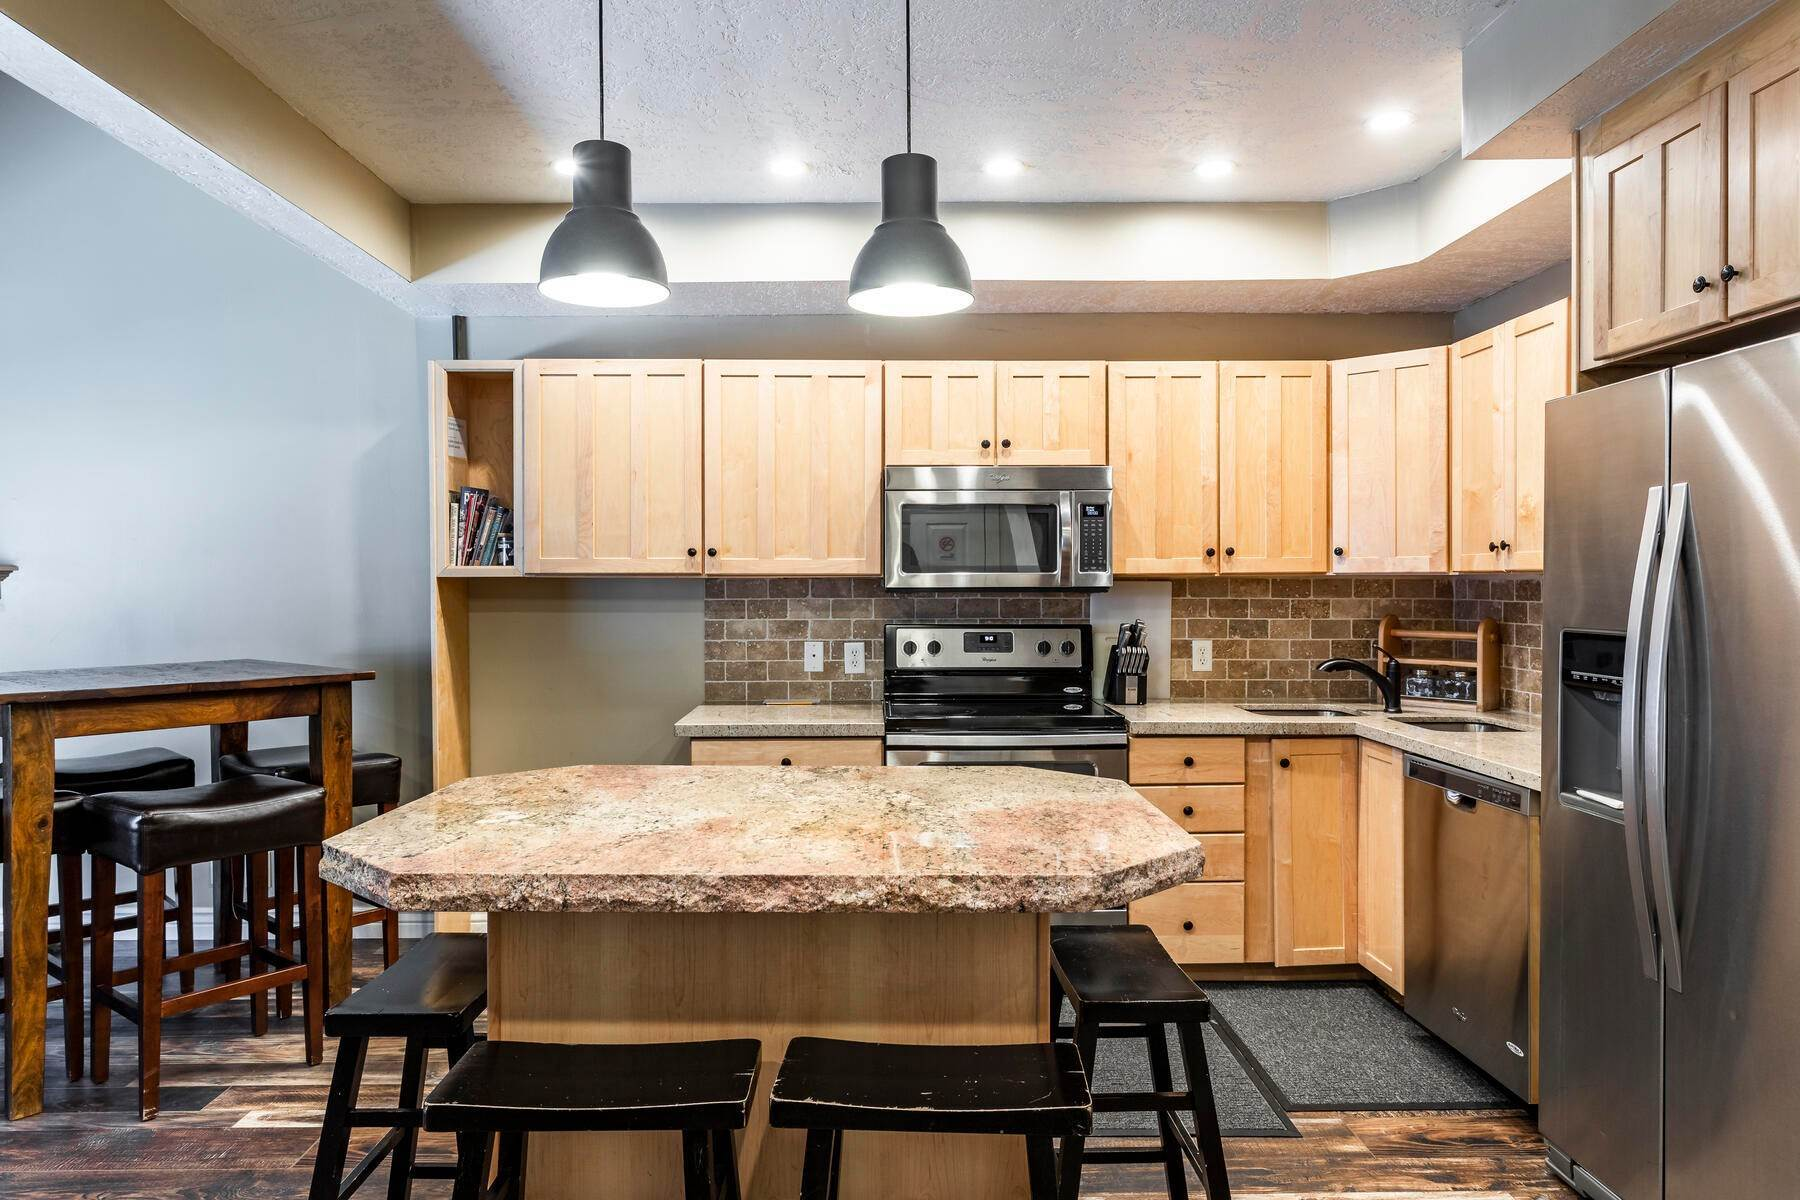 9. Condominiums for Sale at Interline Unit 2. Ultra Rare - Old Town, Park City Condo Just Steps to Skiing! 524 Woodside Ave #2 Park City, Utah 84060 United States